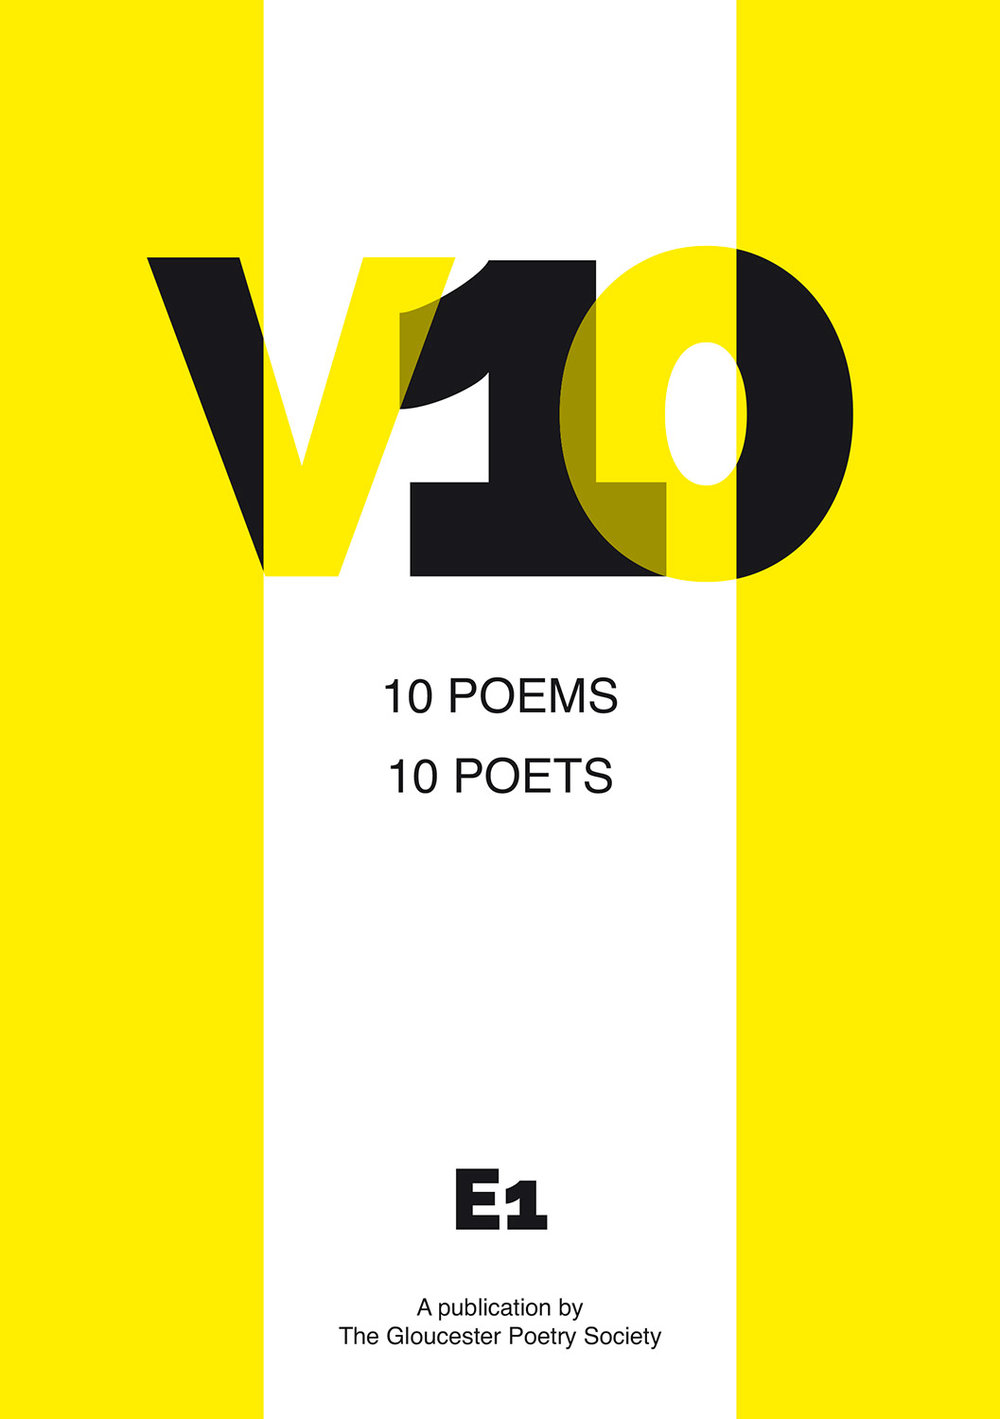 V10-poetry-Pamphlet-edition-1-1500pxl.jpg